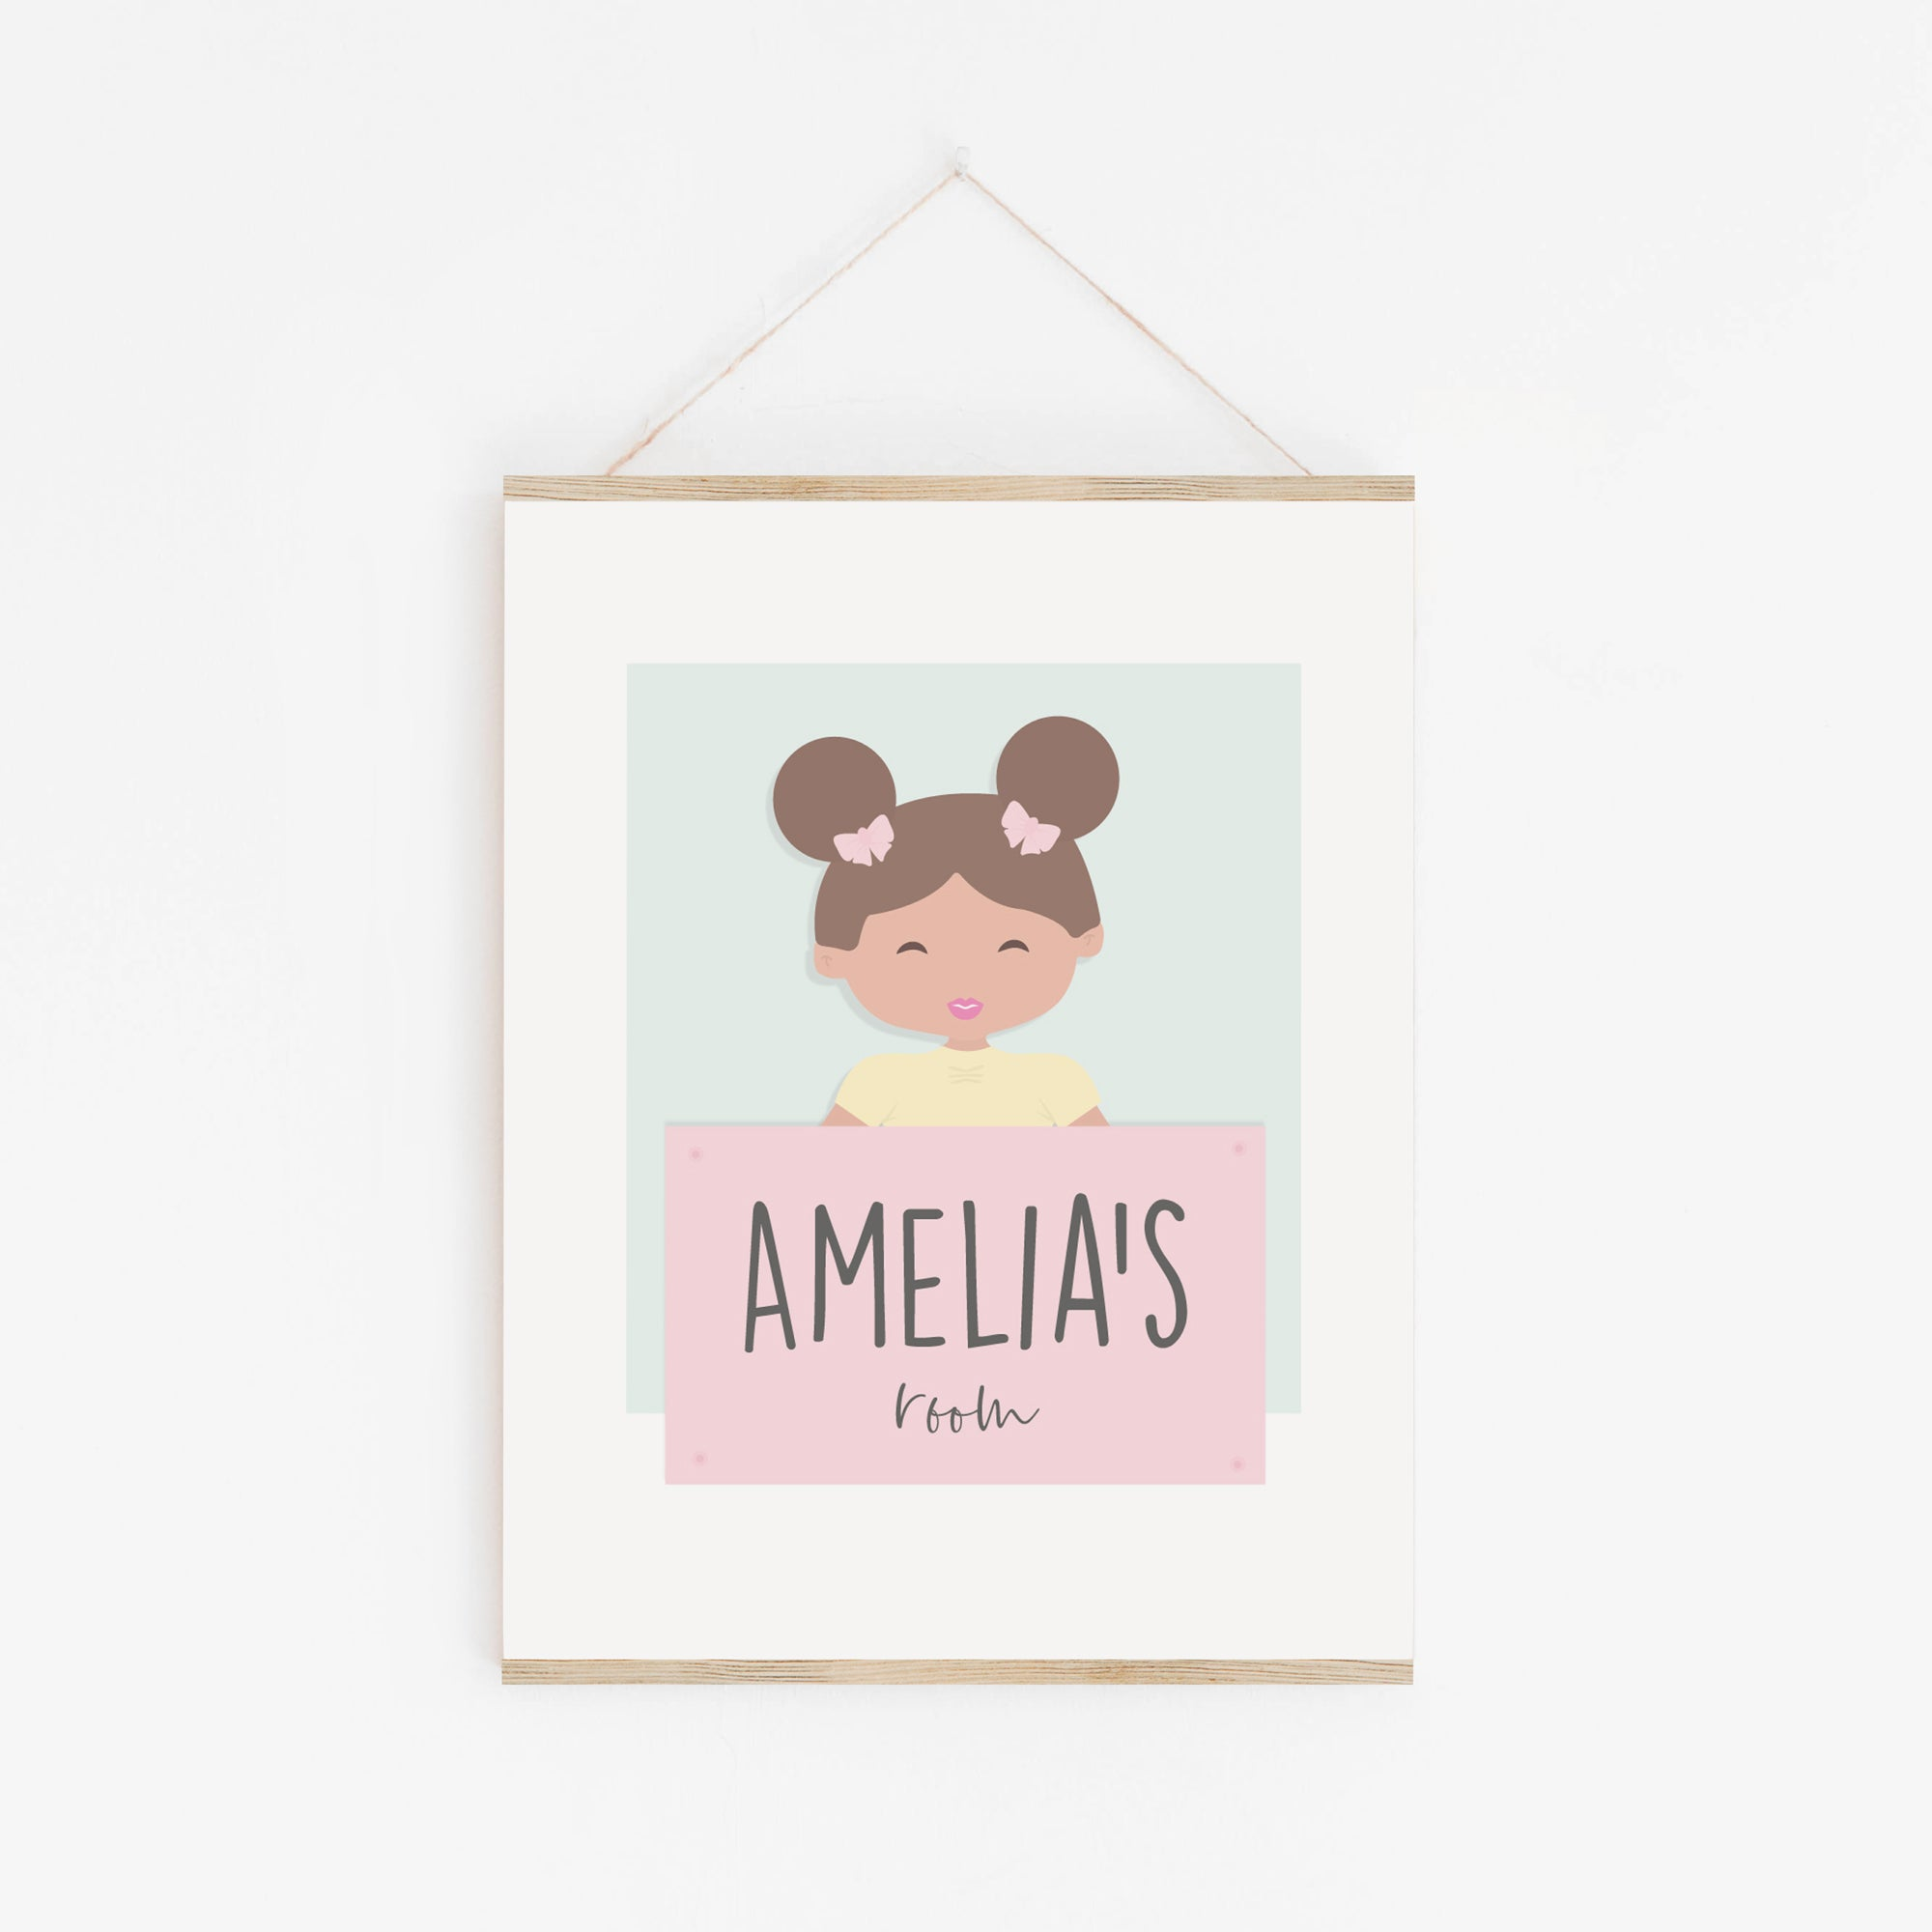 Baby handmade wall prints | unique newborn gift